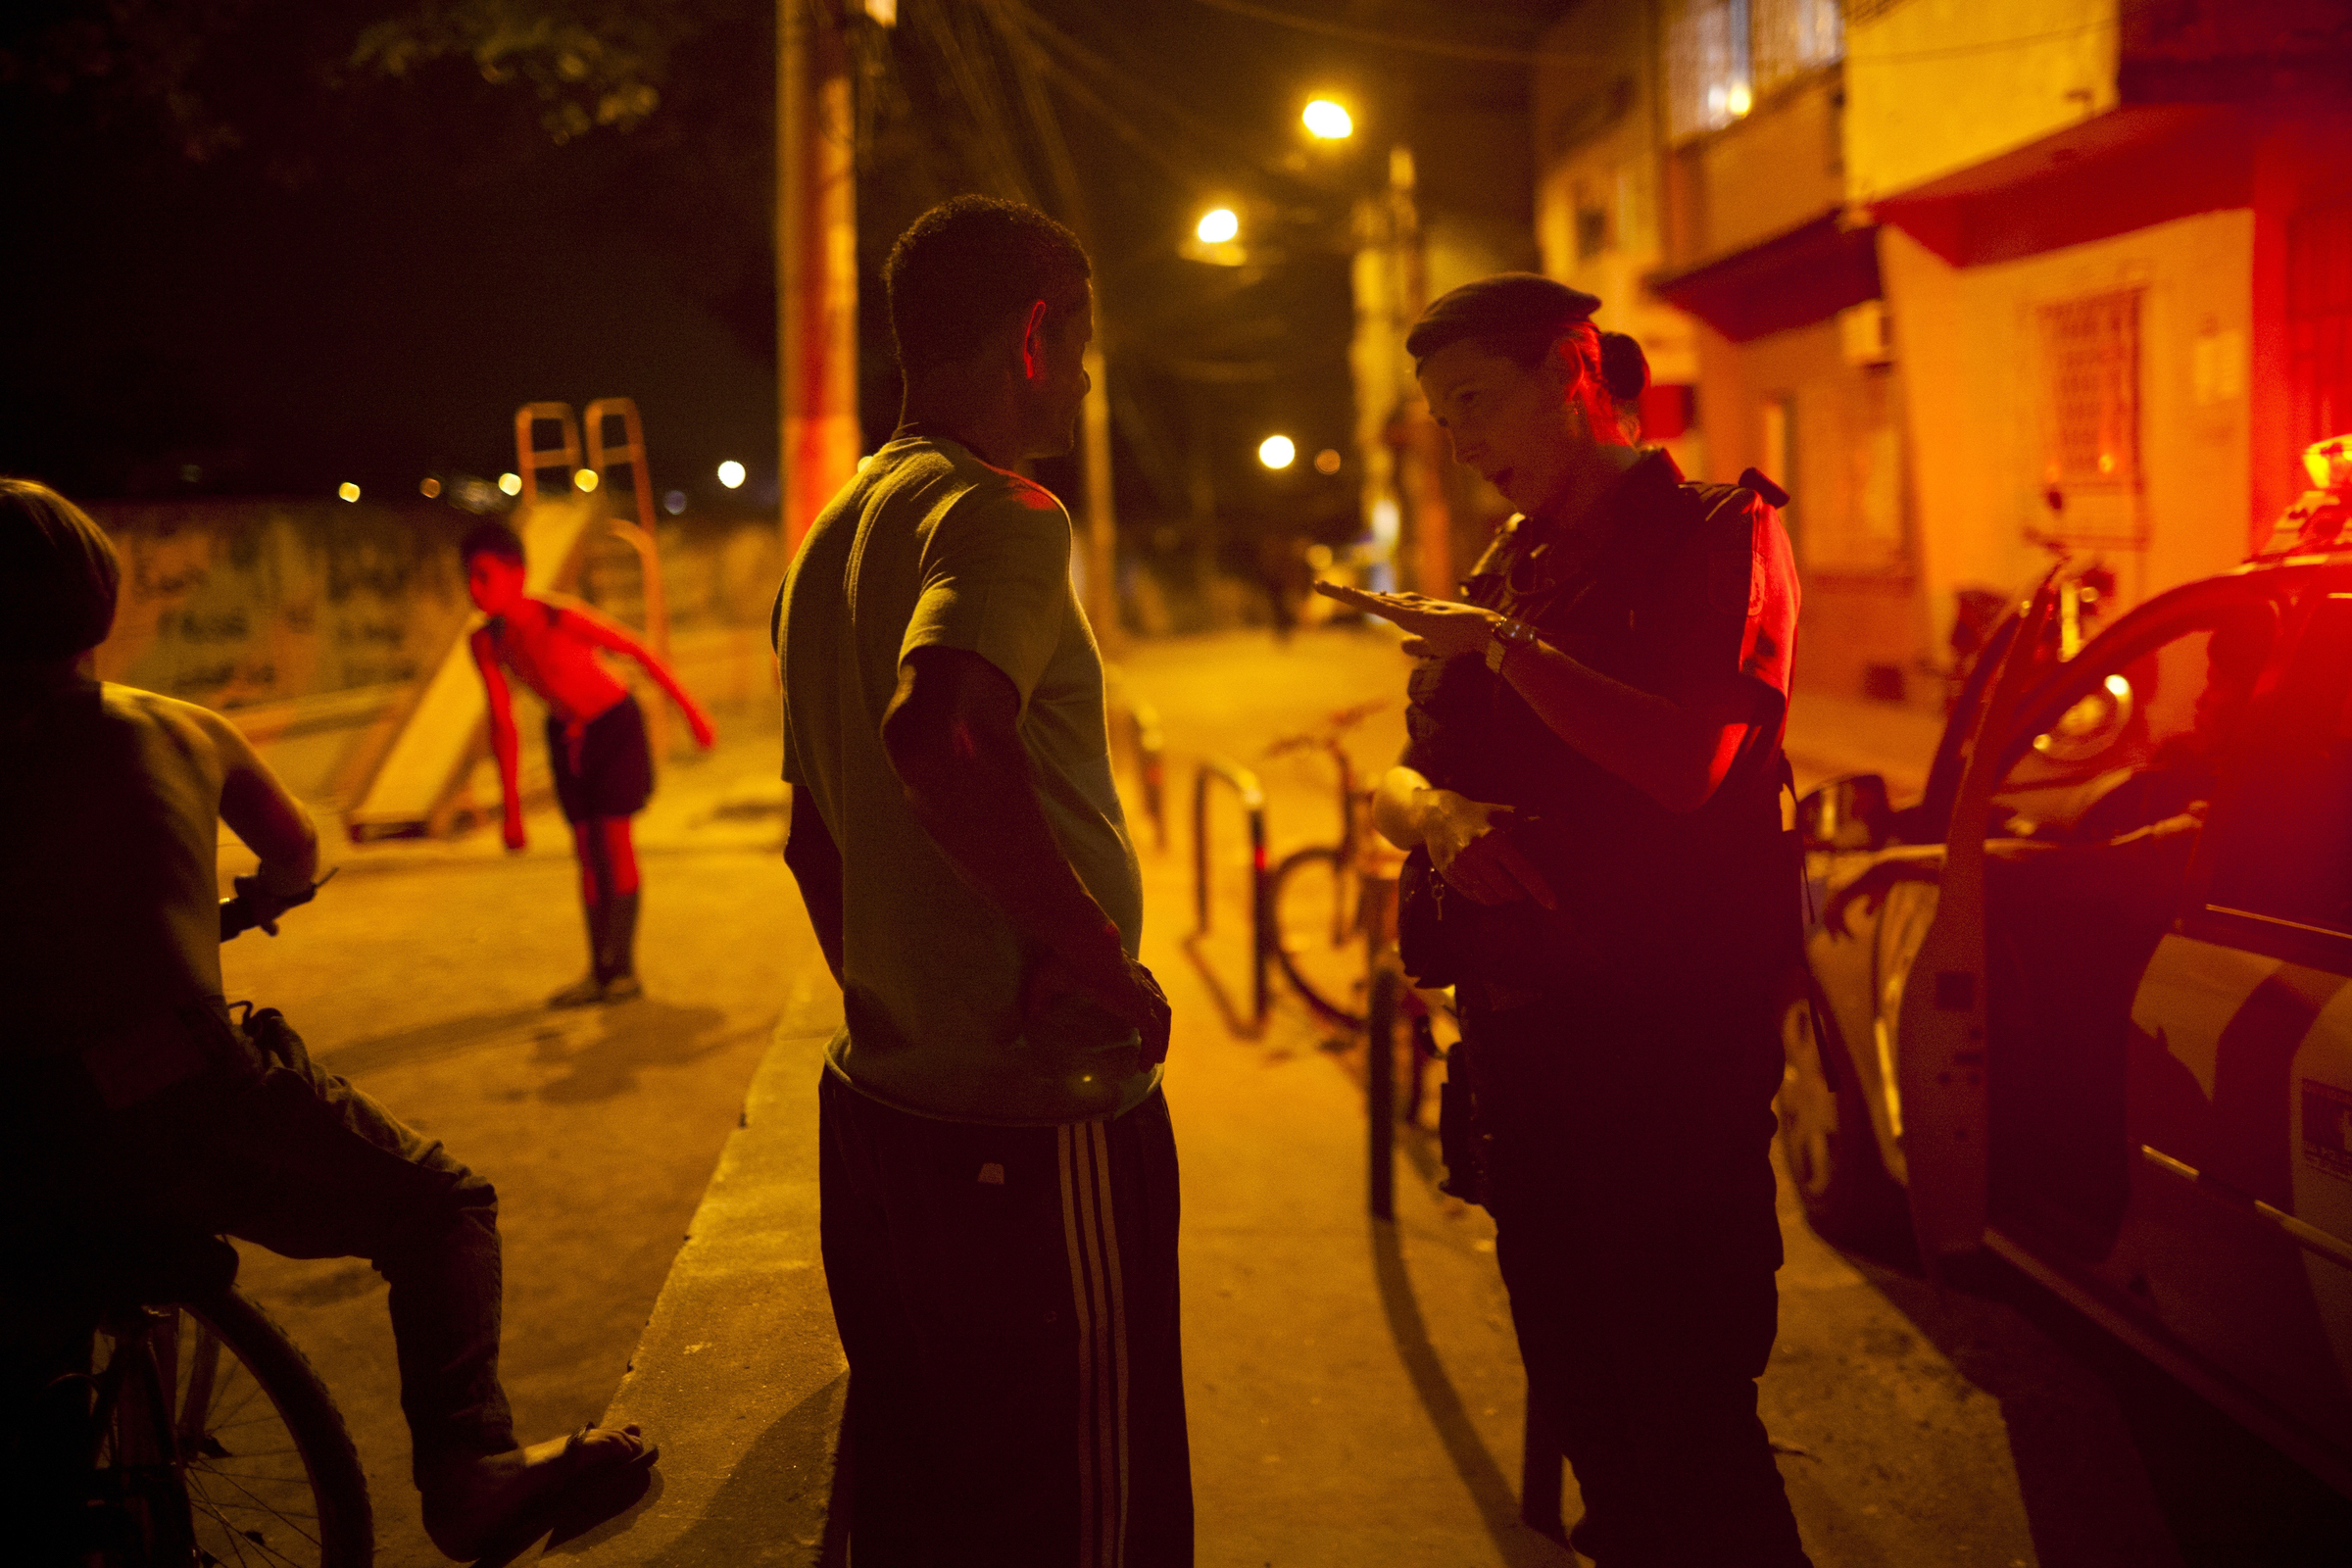 Officer Carla Bon talks with a resident during patrol in Rio's Complexo do Caju.